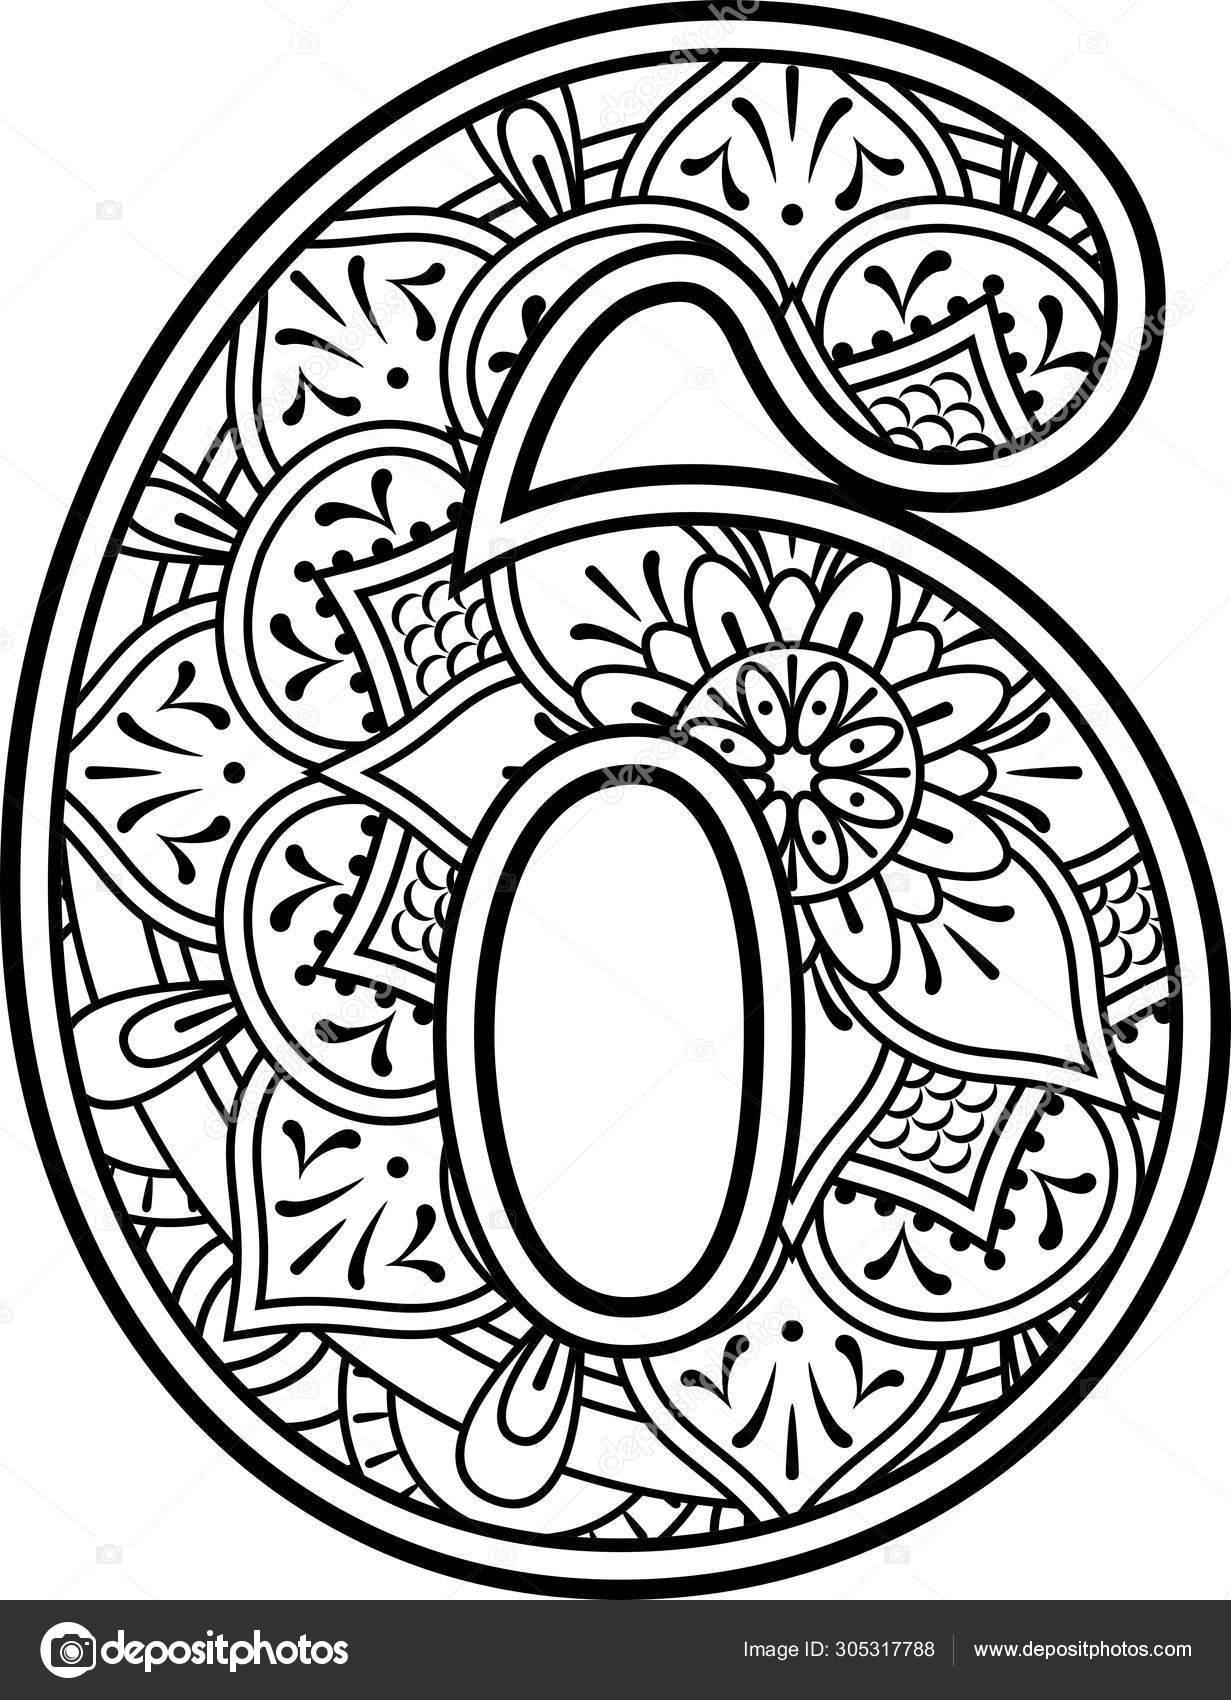 Number Black White Doodle Ornaments Design Elements Mandala Art